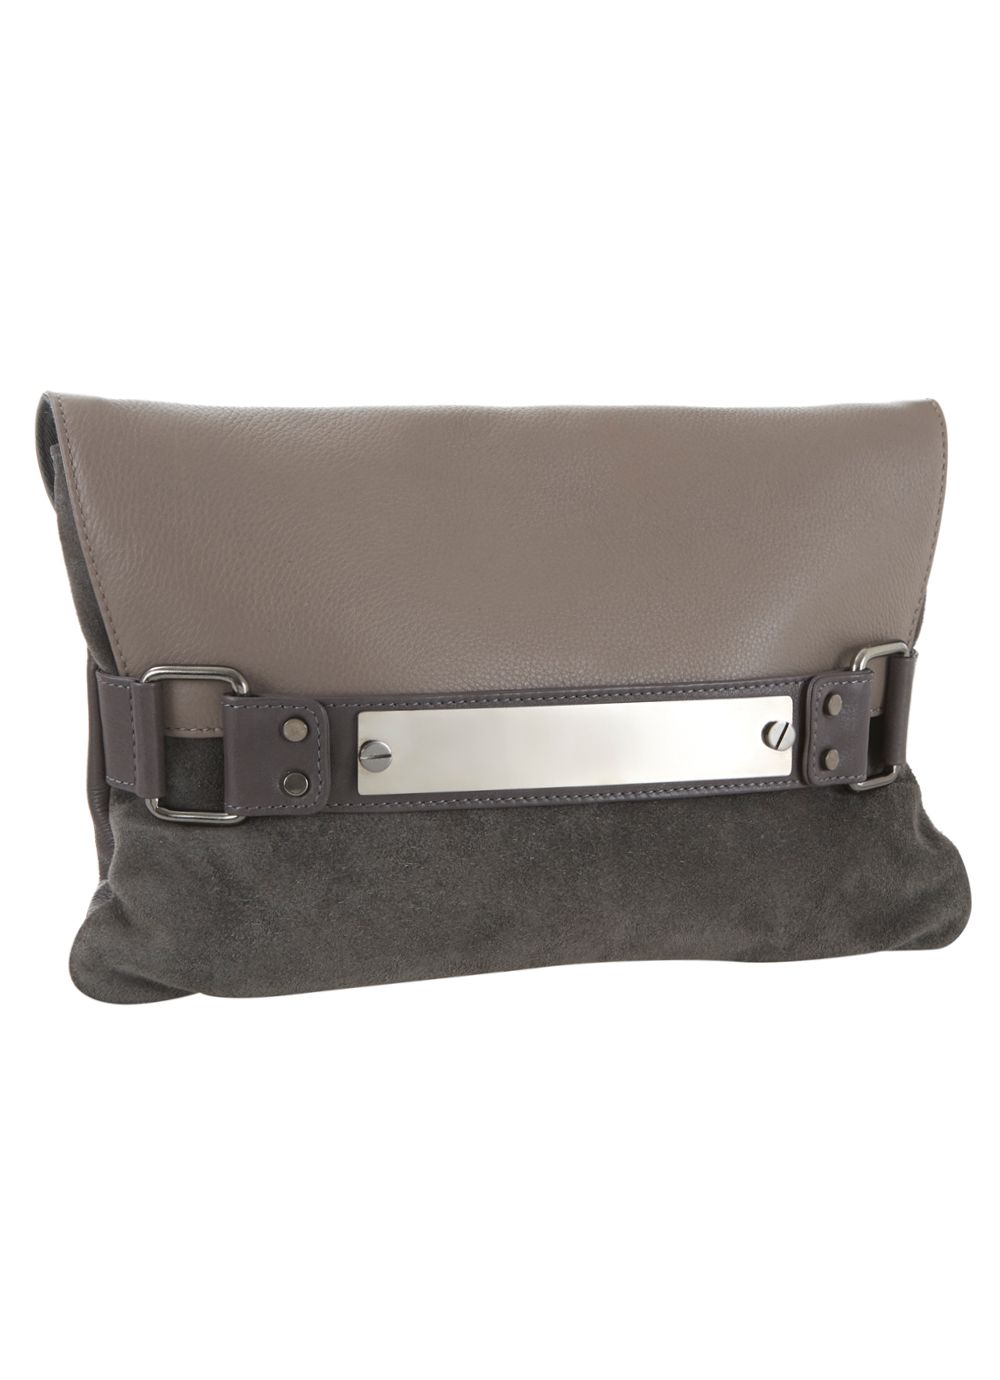 Mink & grey emily clutch bag